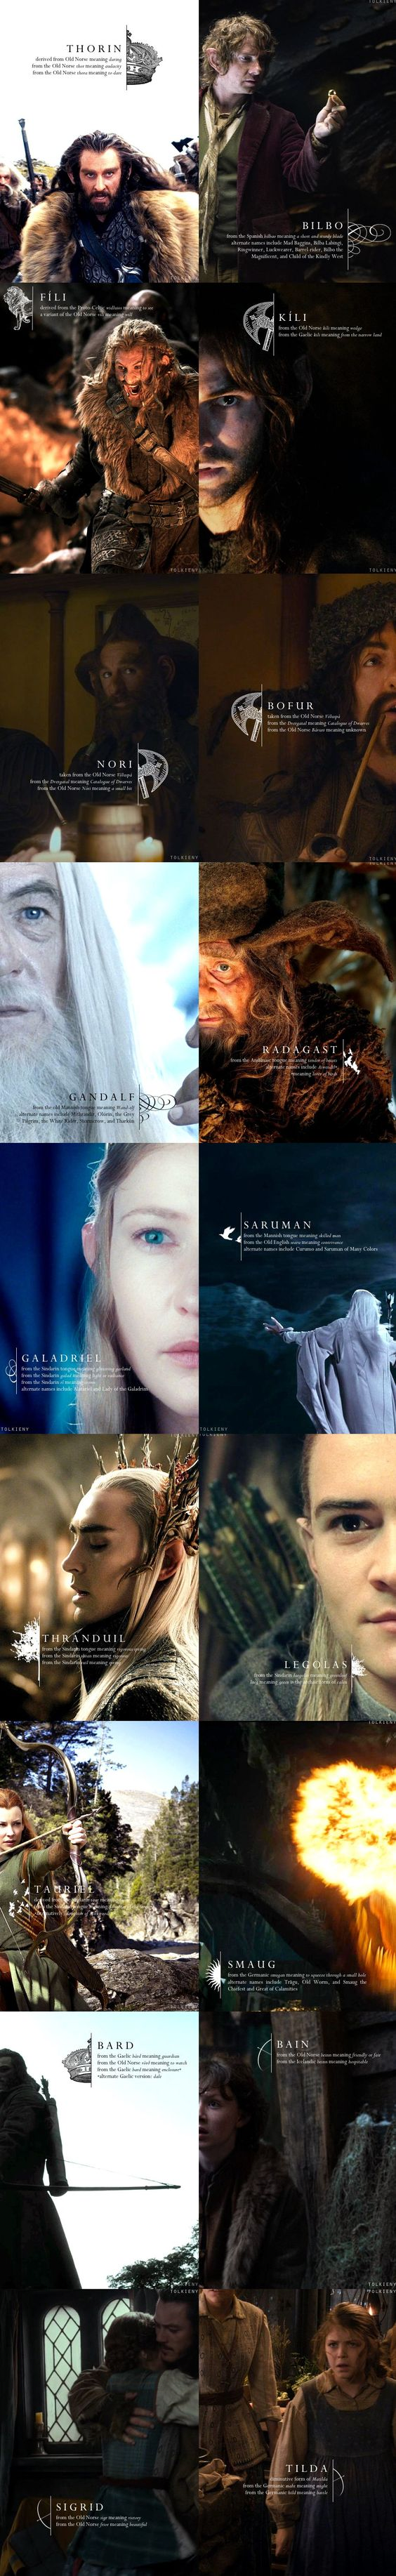 Meanings of Names in The Hobbit. Sigrid, Tilda, and Tauriel shouldn't even be in the hobbit